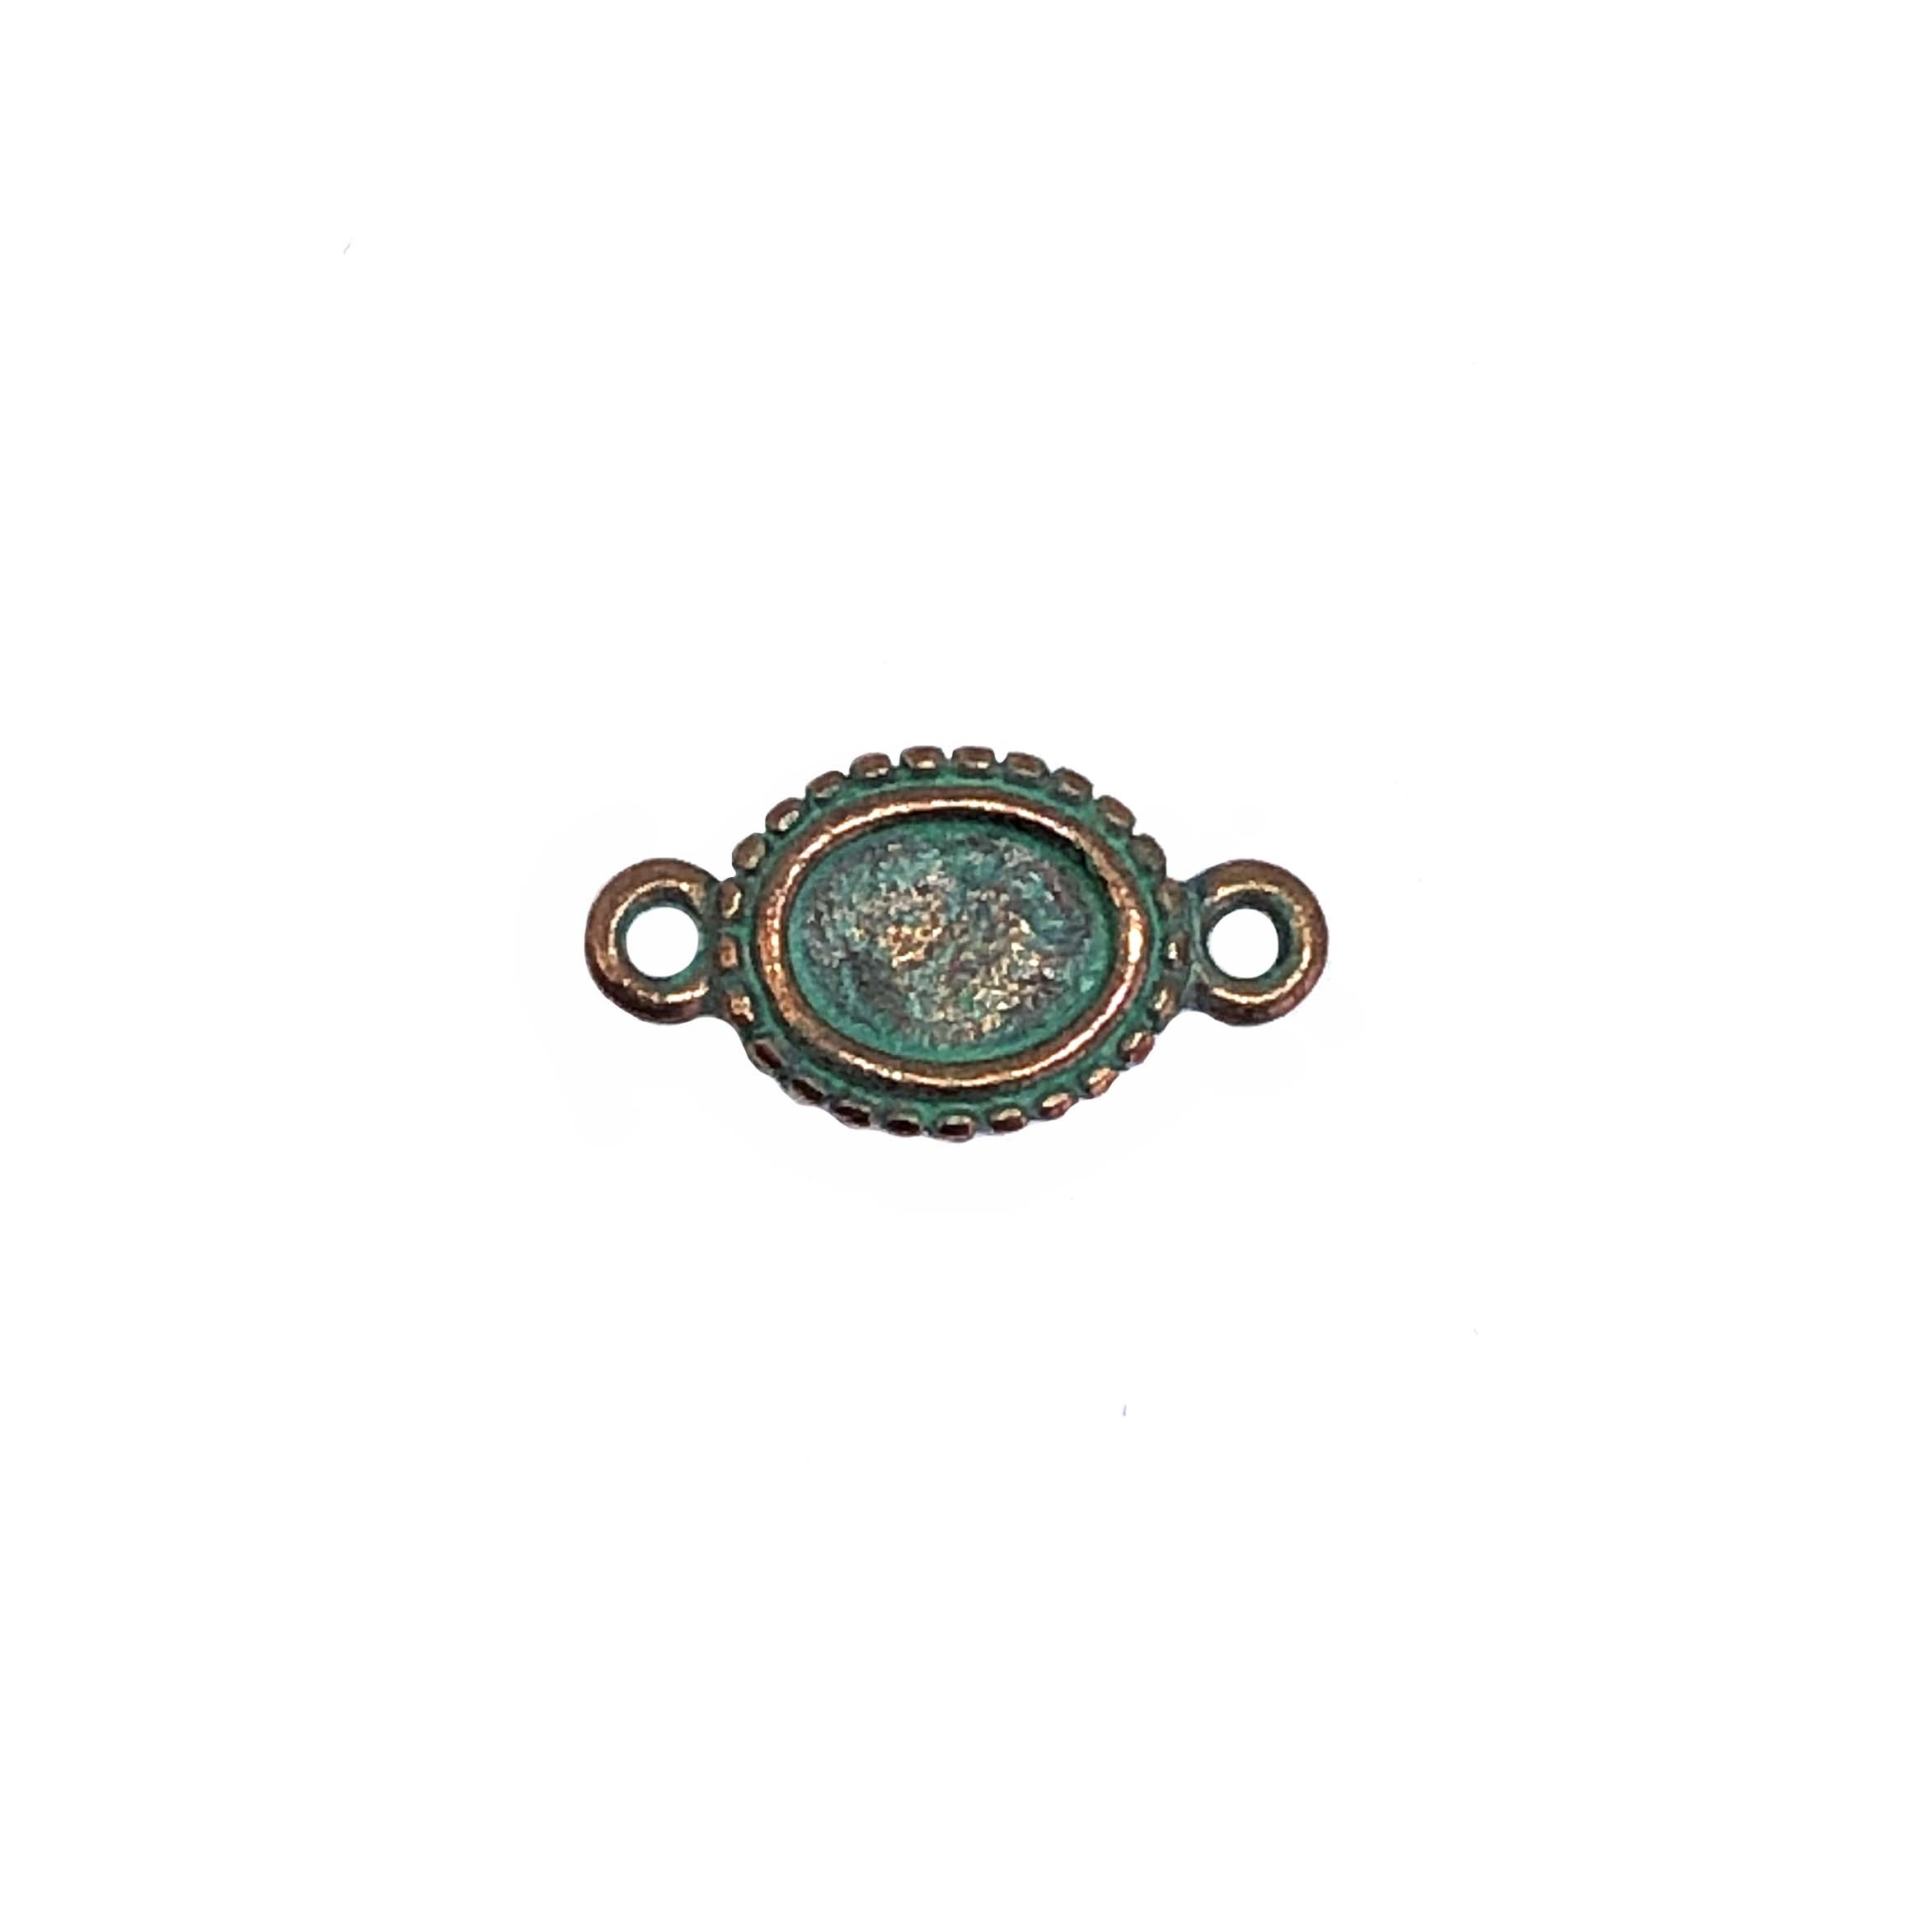 vintage pewter castings, B'sue by 1928, jewelry connector, bracelet making, weathered copper, nickel free, lead free pewter, cameo mount, mint green patina, us made, designer jewelry, vintage supplies, 1928 jewelry, B'sue Boutiques, 9x6mm mount, 0330